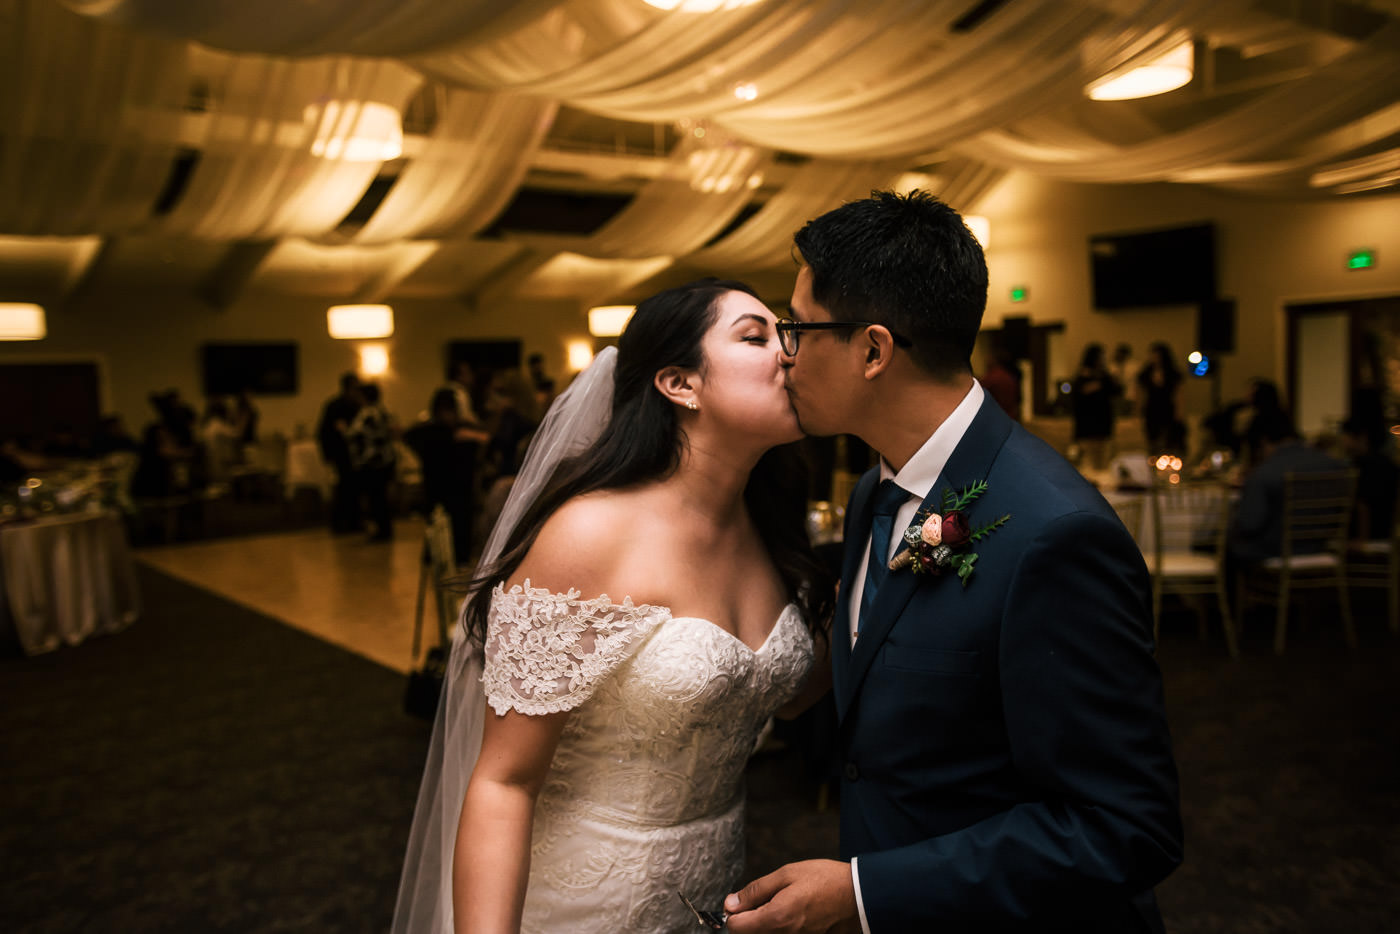 Couple kisses after their cake cutting at wedding reception.